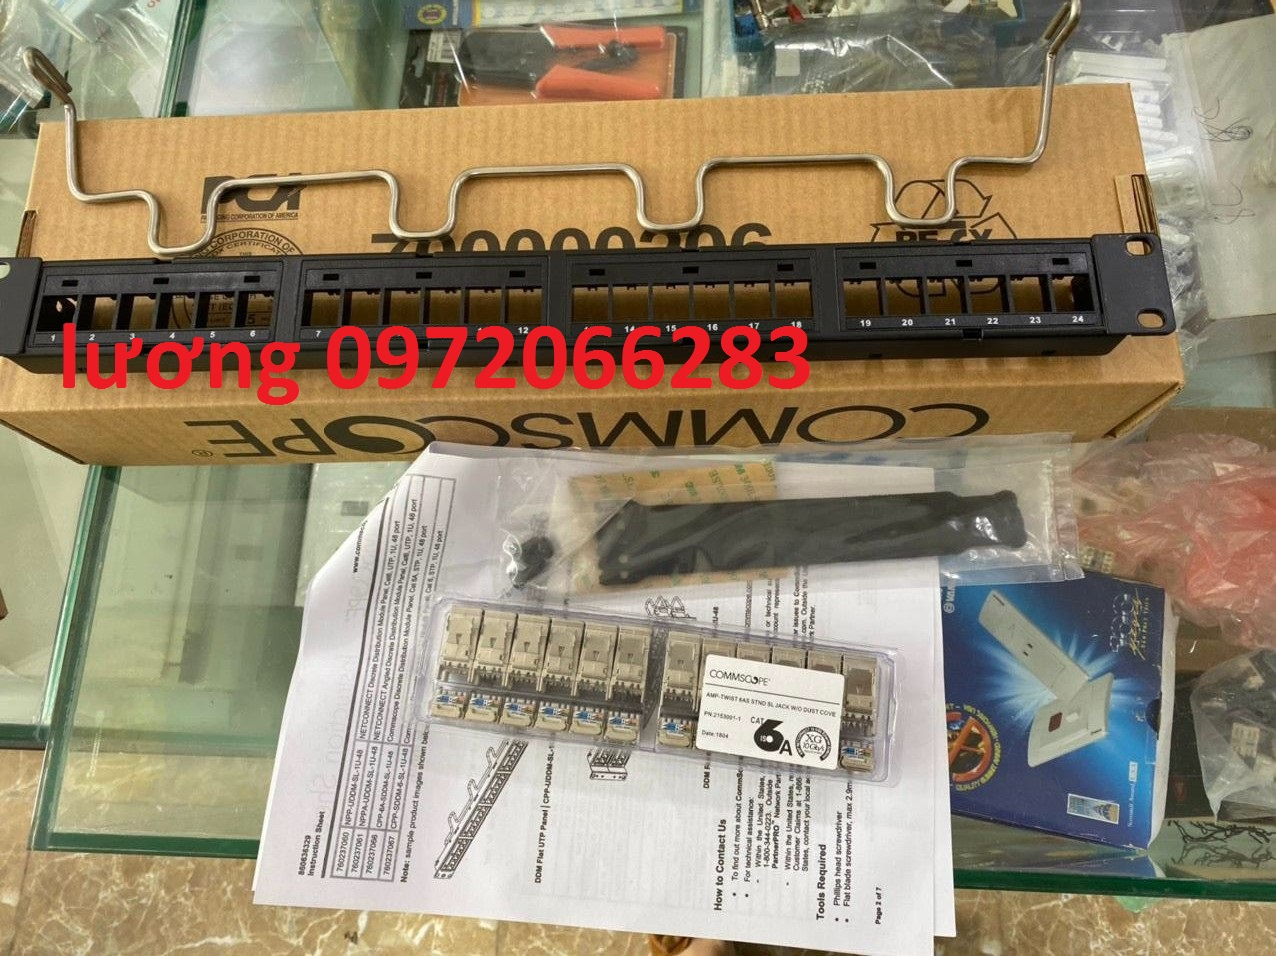 thanh dau noi patch panel 24 cong cat6a 1.jpg